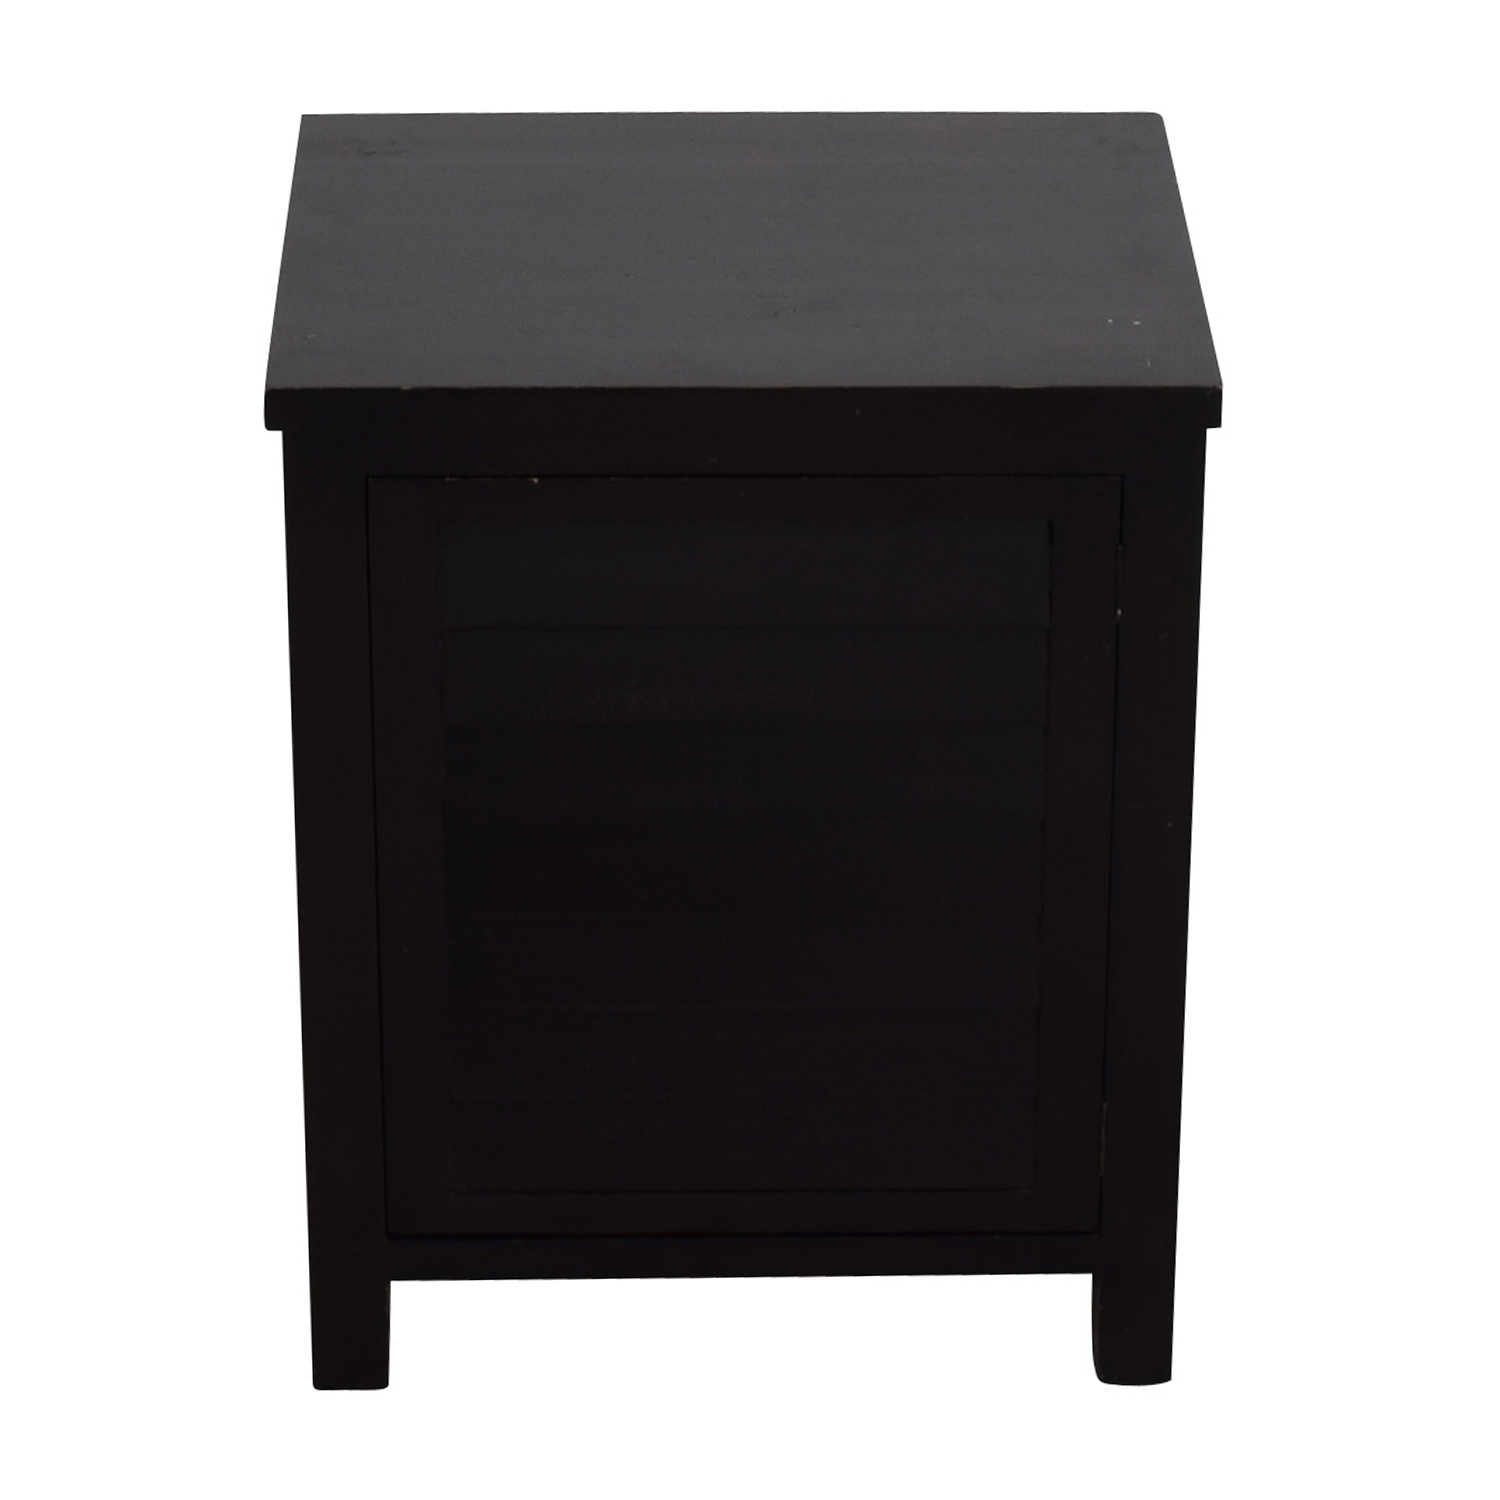 Crate & Barrel Side Table with Storage / End Tables